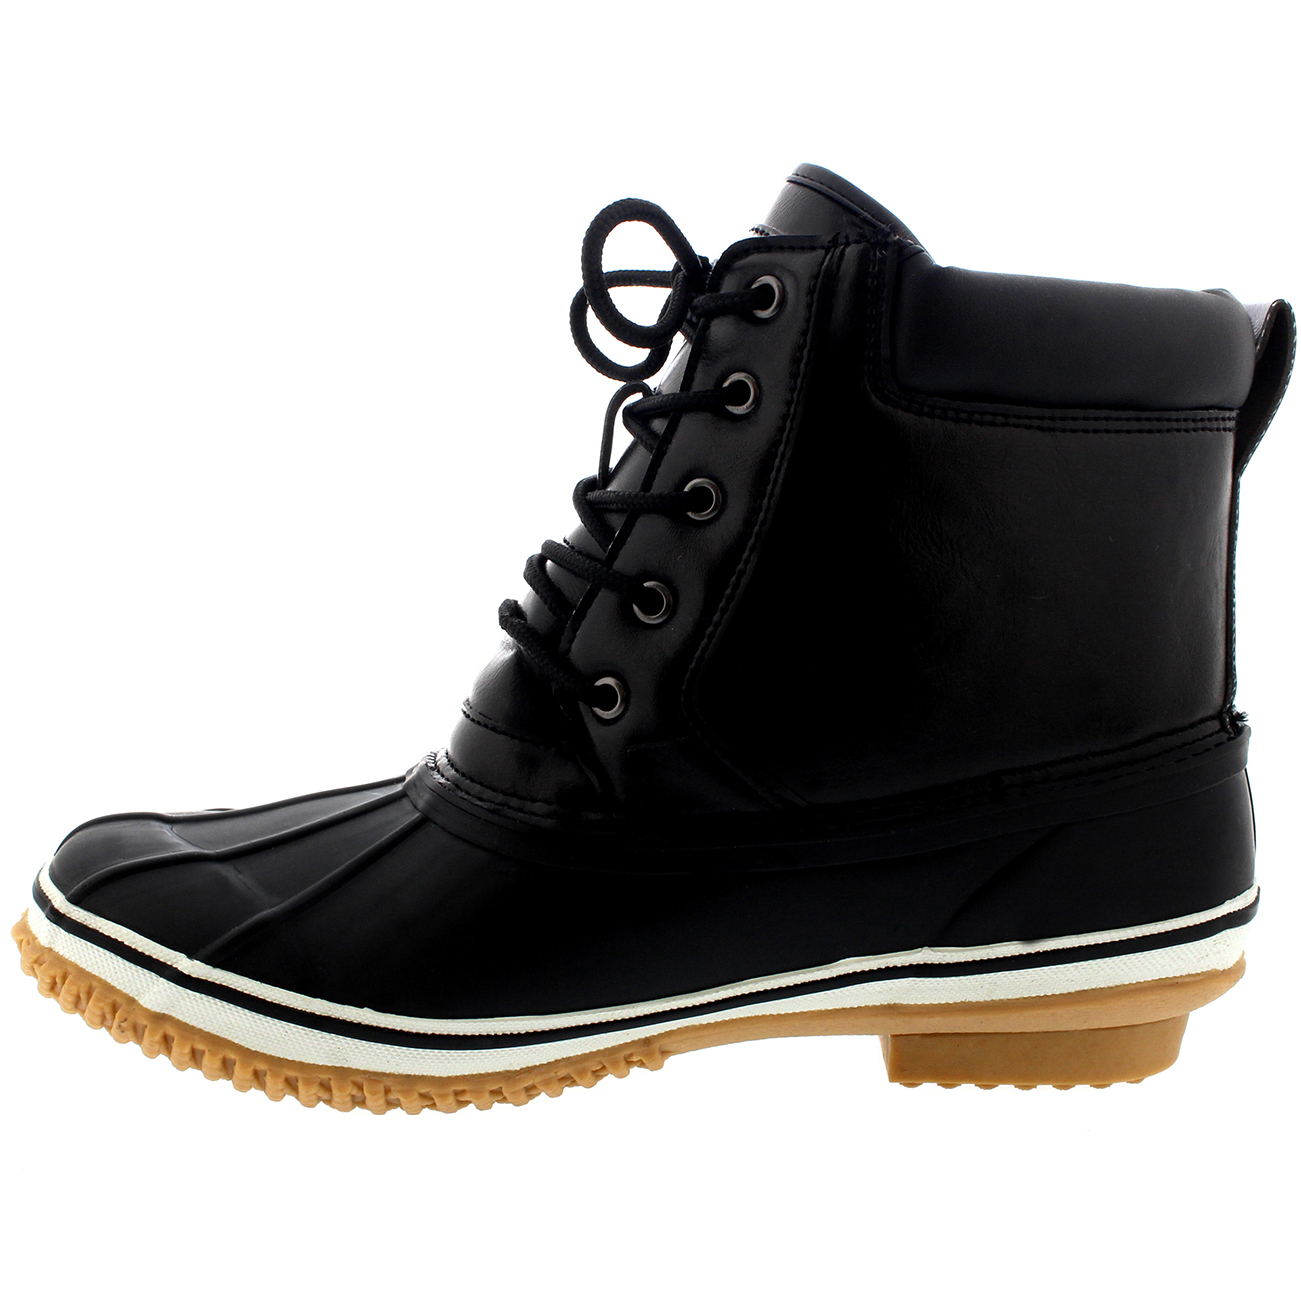 Free shipping BOTH ways on ll bean boots for men, from our vast selection of styles. Fast delivery, and 24/7/ real-person service with a smile. Click or call